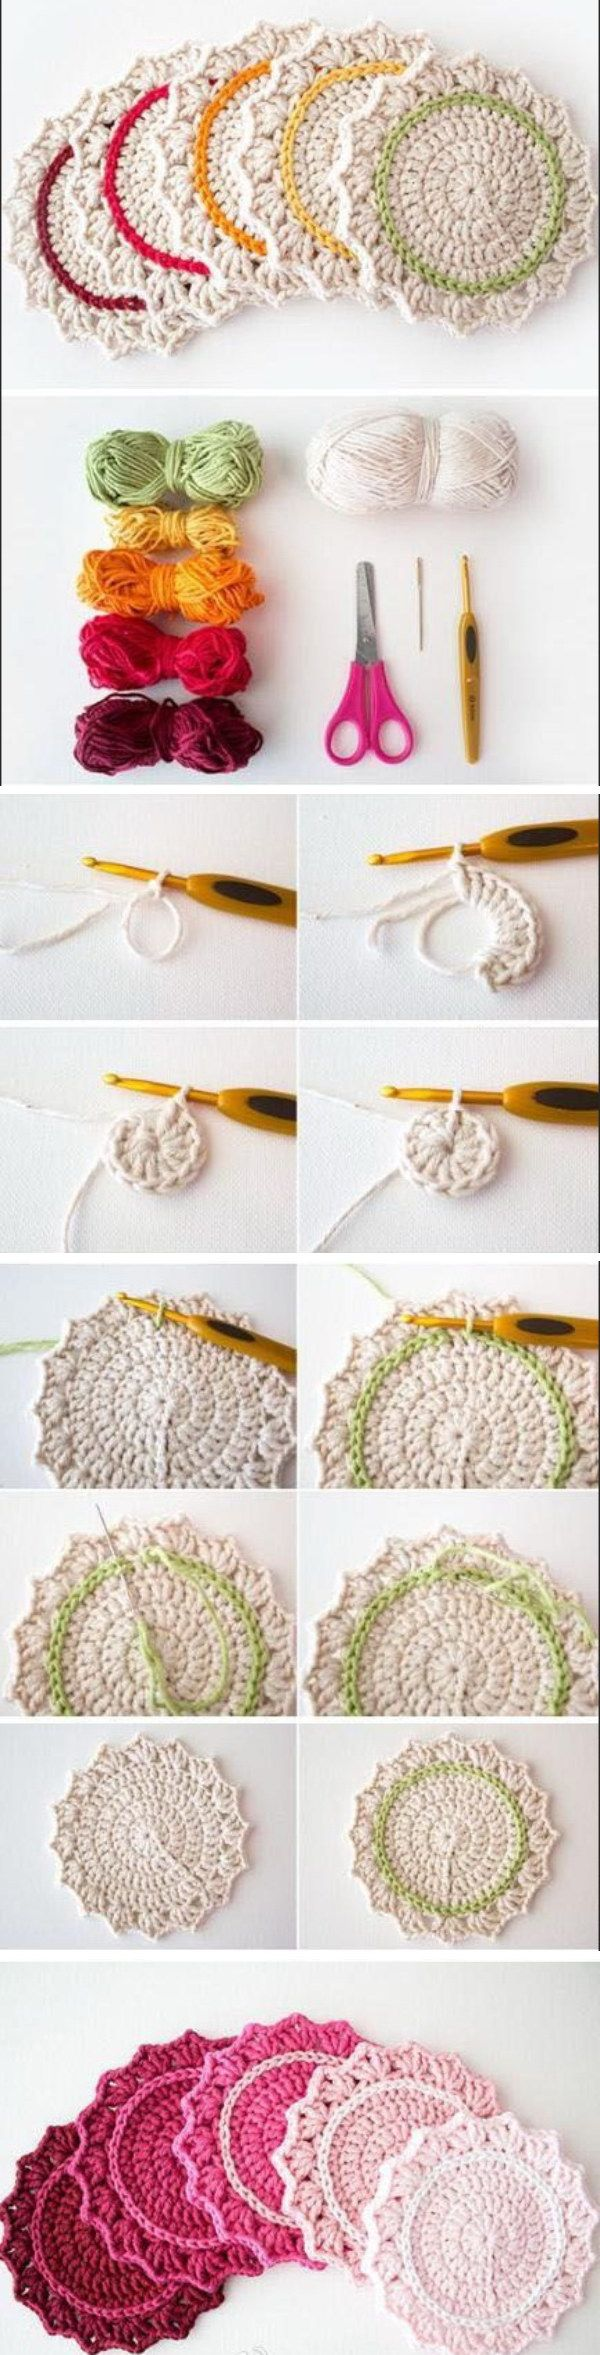 Easy Crochet Projects for You to Start with | Ombre, Ganchillo y Tejido